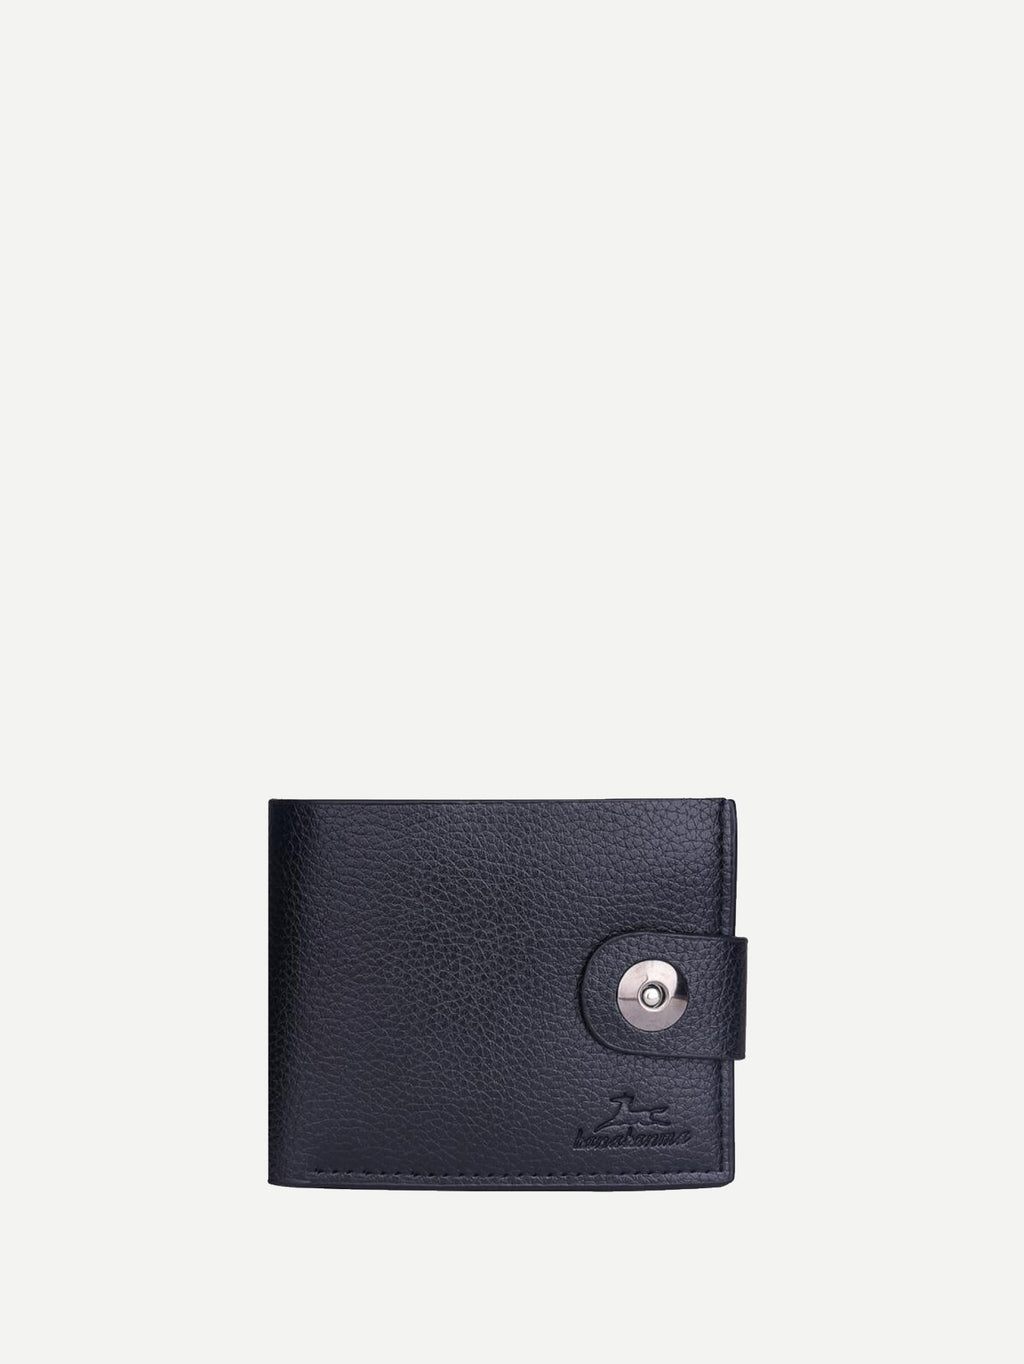 Men's Wallets - Magnetic Button Fold Over Wallet